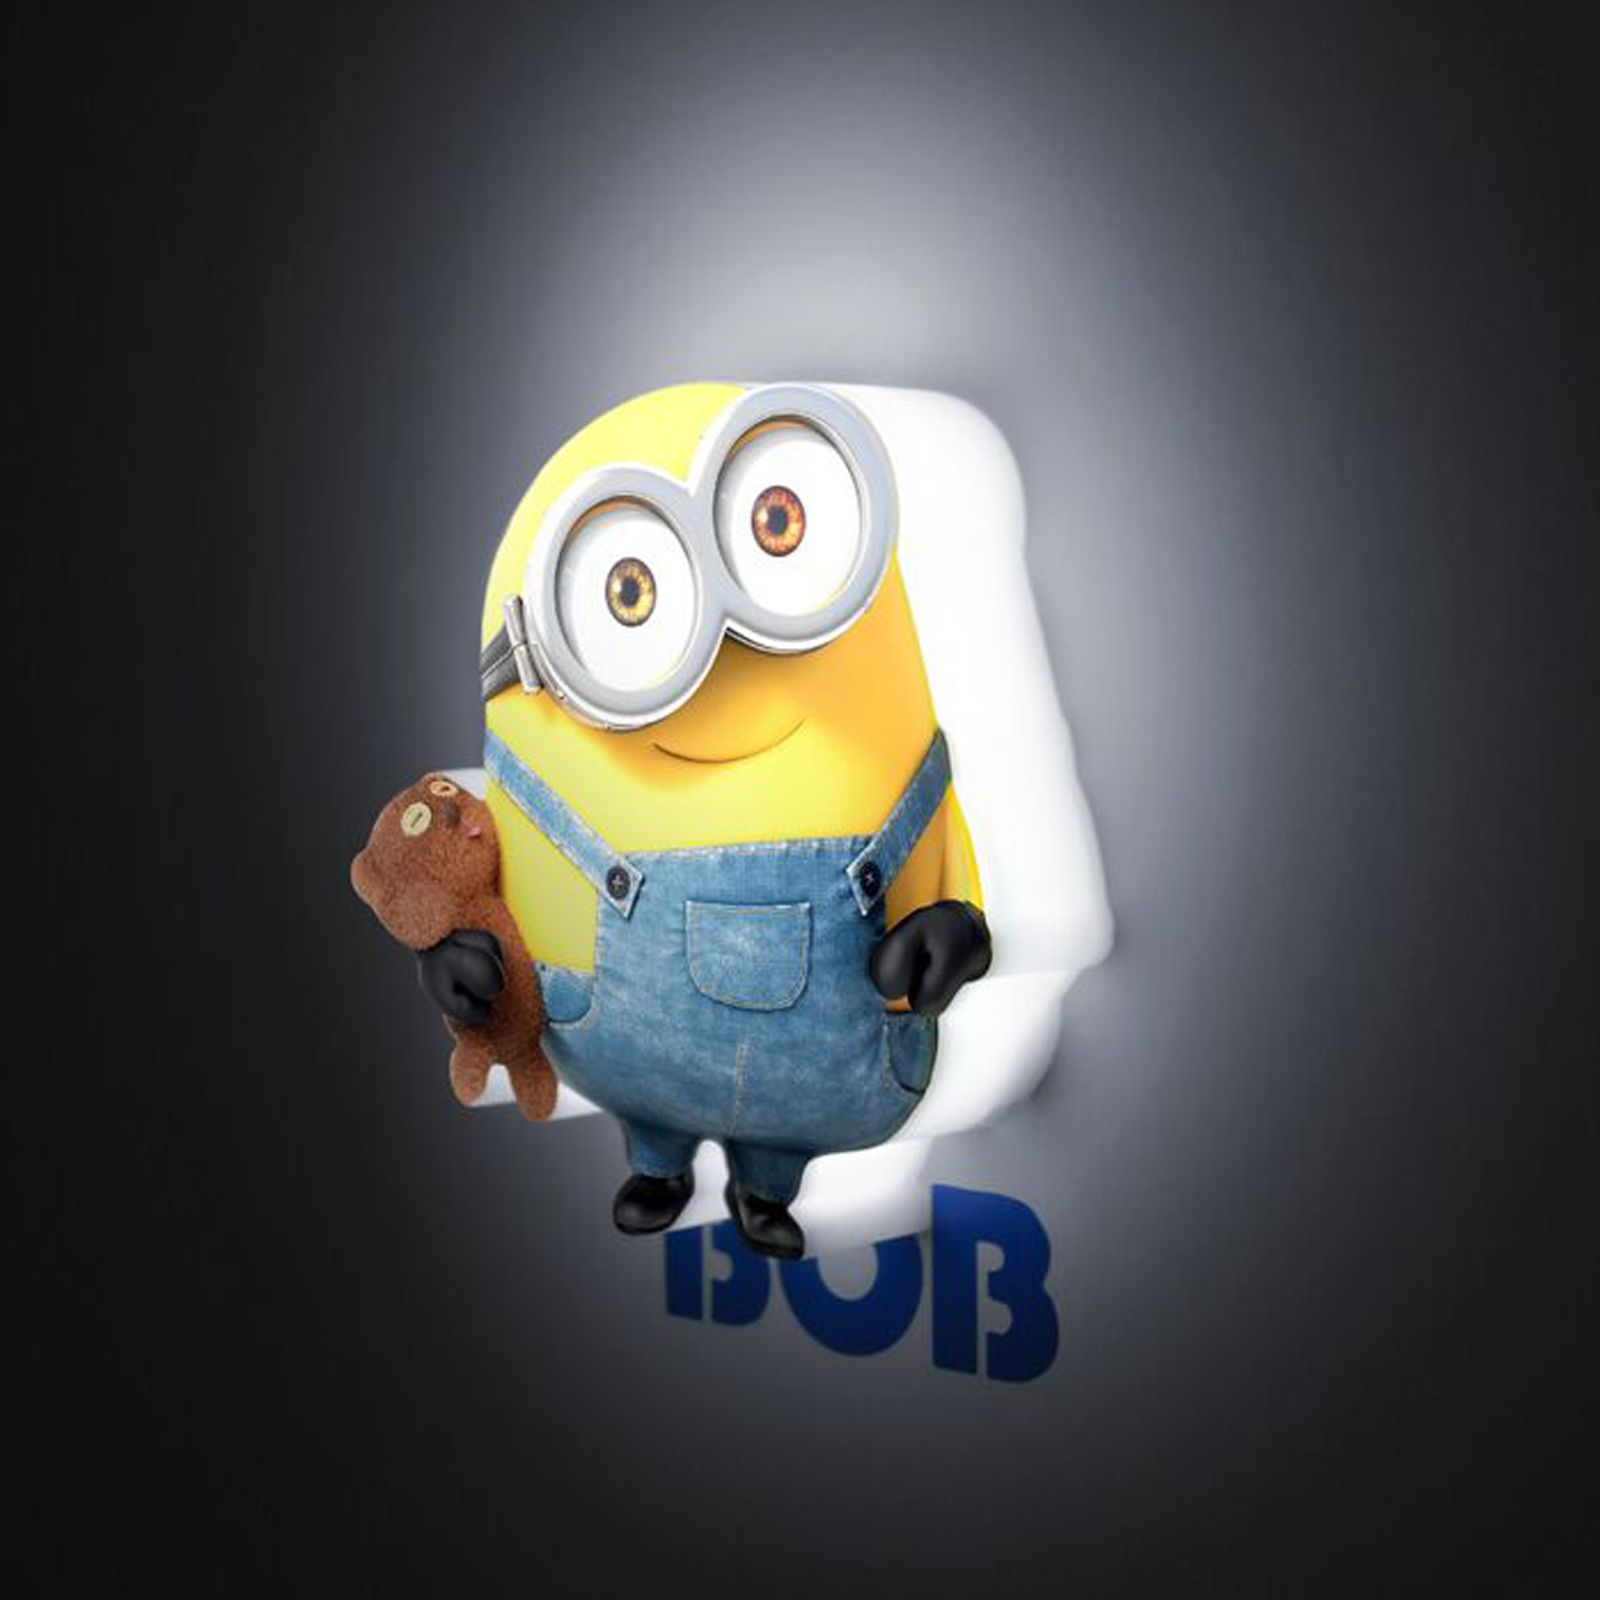 Wall Lamps For Kids Rooms 3d Mini Led Wall Lights Kids Bedroom Lighting Minions Star